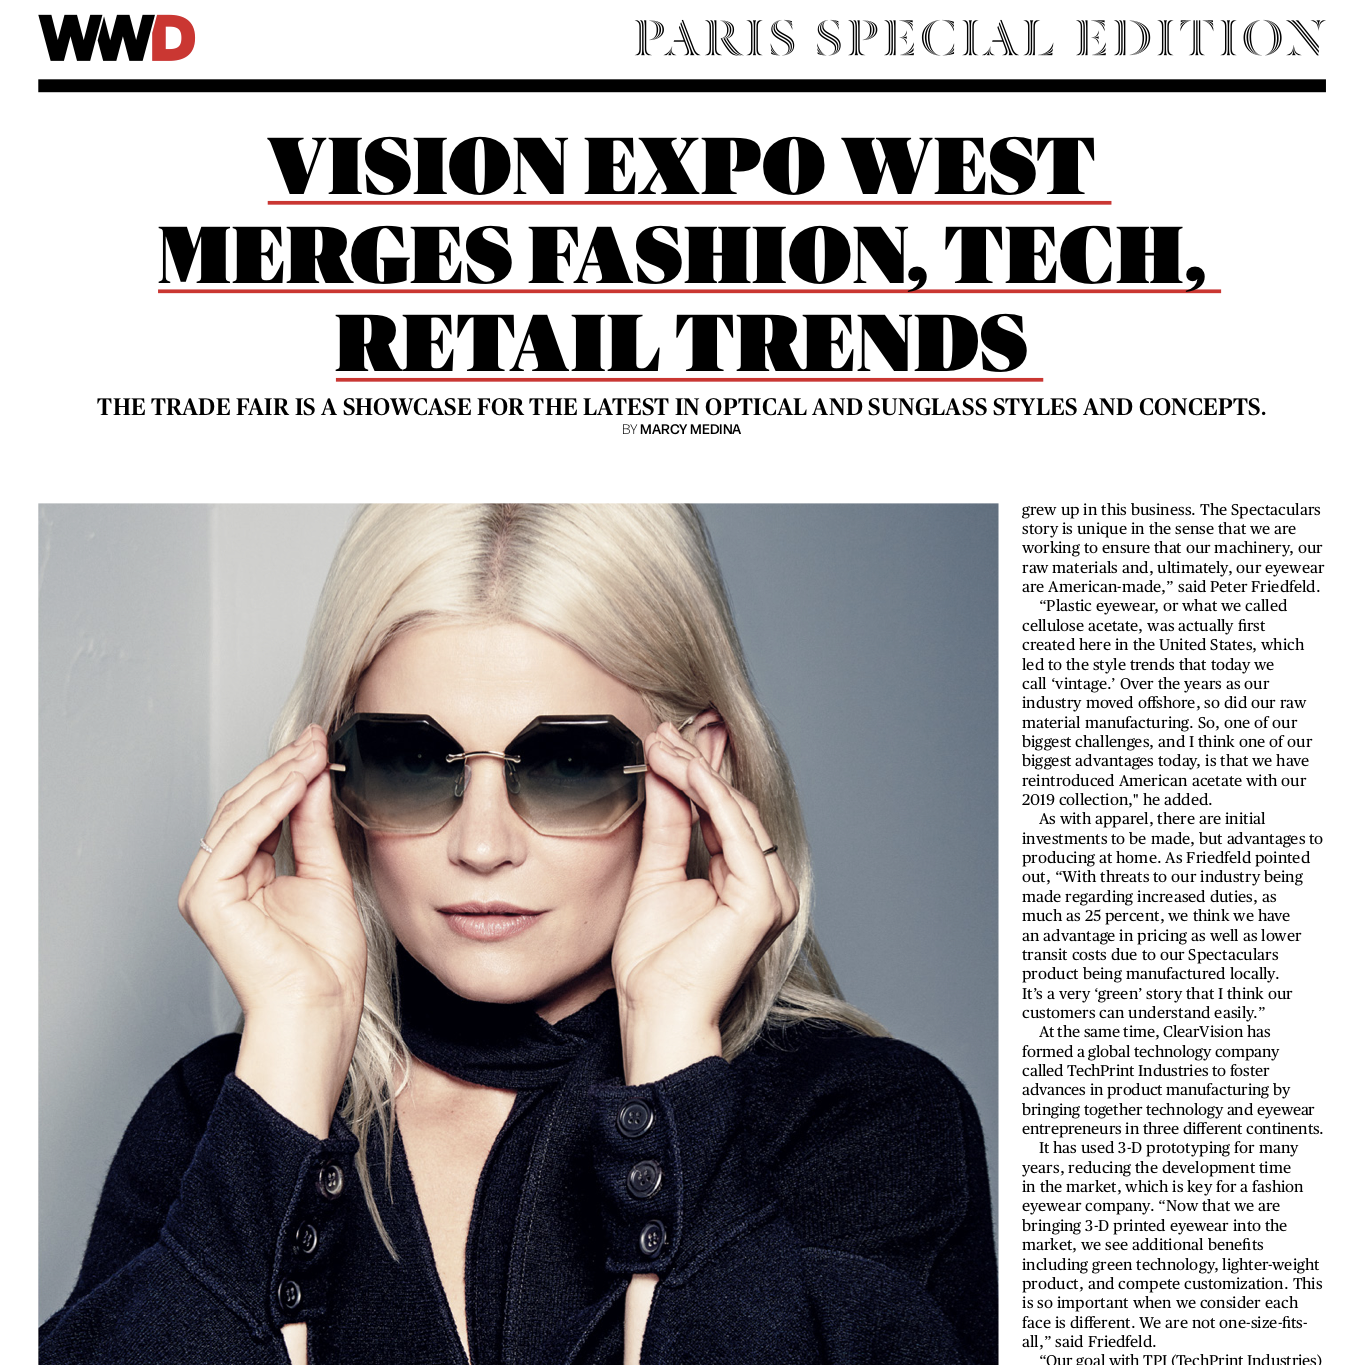 203a813fe1f WWD article on Vision Expo West with feature on Kate Young for Tura